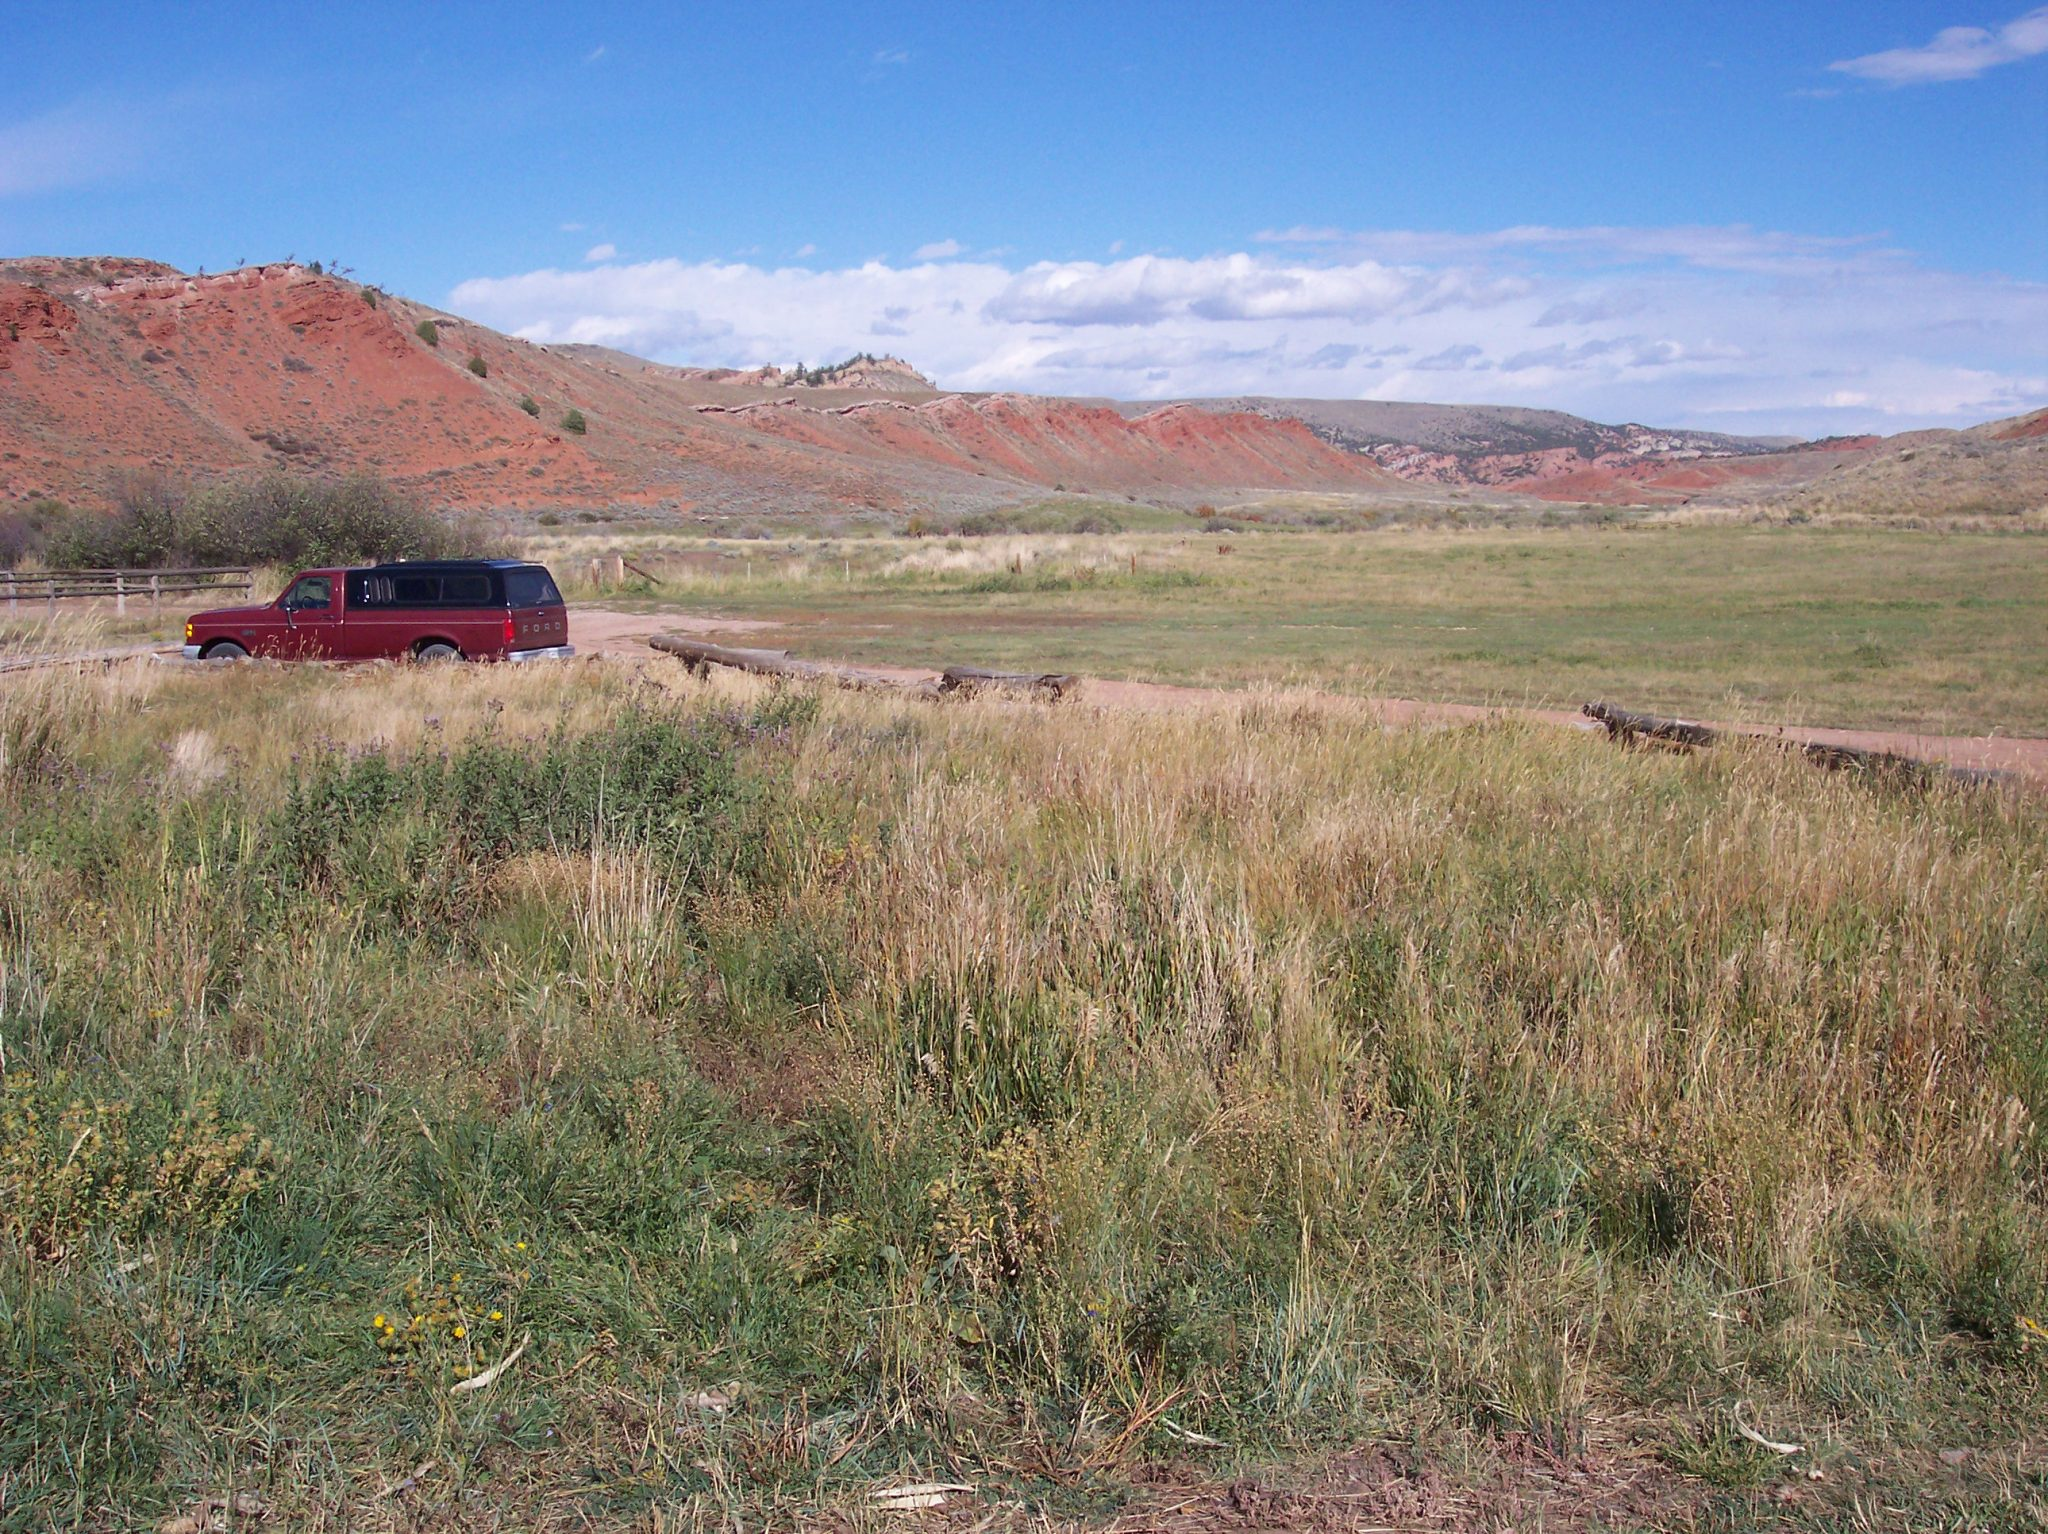 July 2002 visit to Twin Creek Ranch near Lander Wyoming. Sun Prairie was first conceived here.